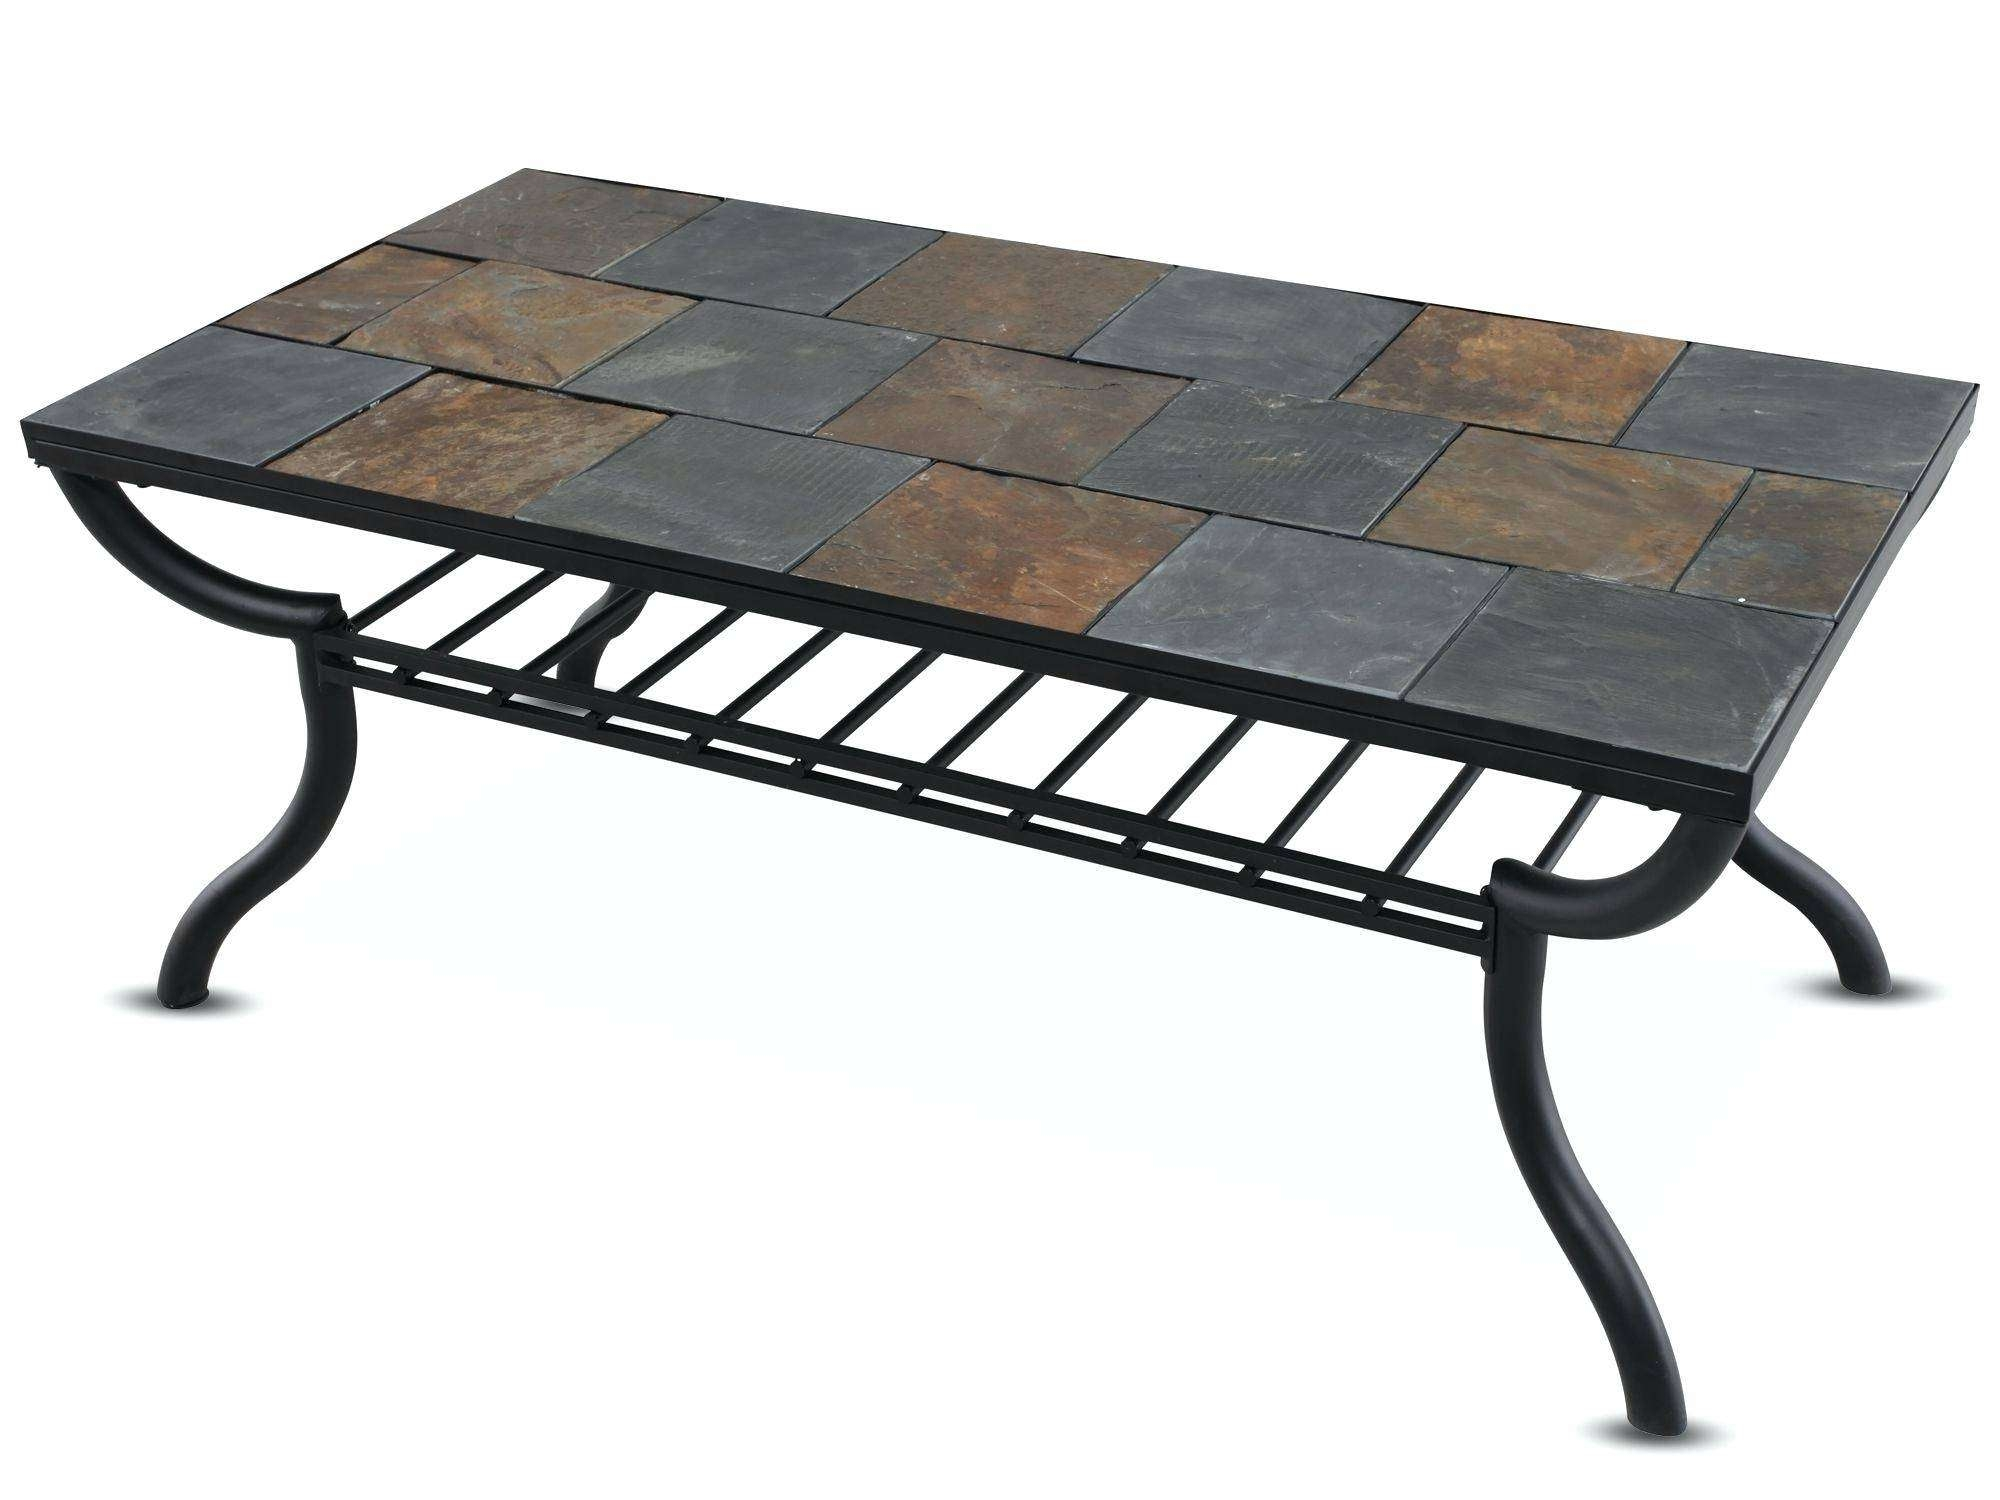 Collection Waverly Lift Top Coffee Table – Mediasupload In Newest Waverly Lift Top Coffee Tables (View 10 of 20)